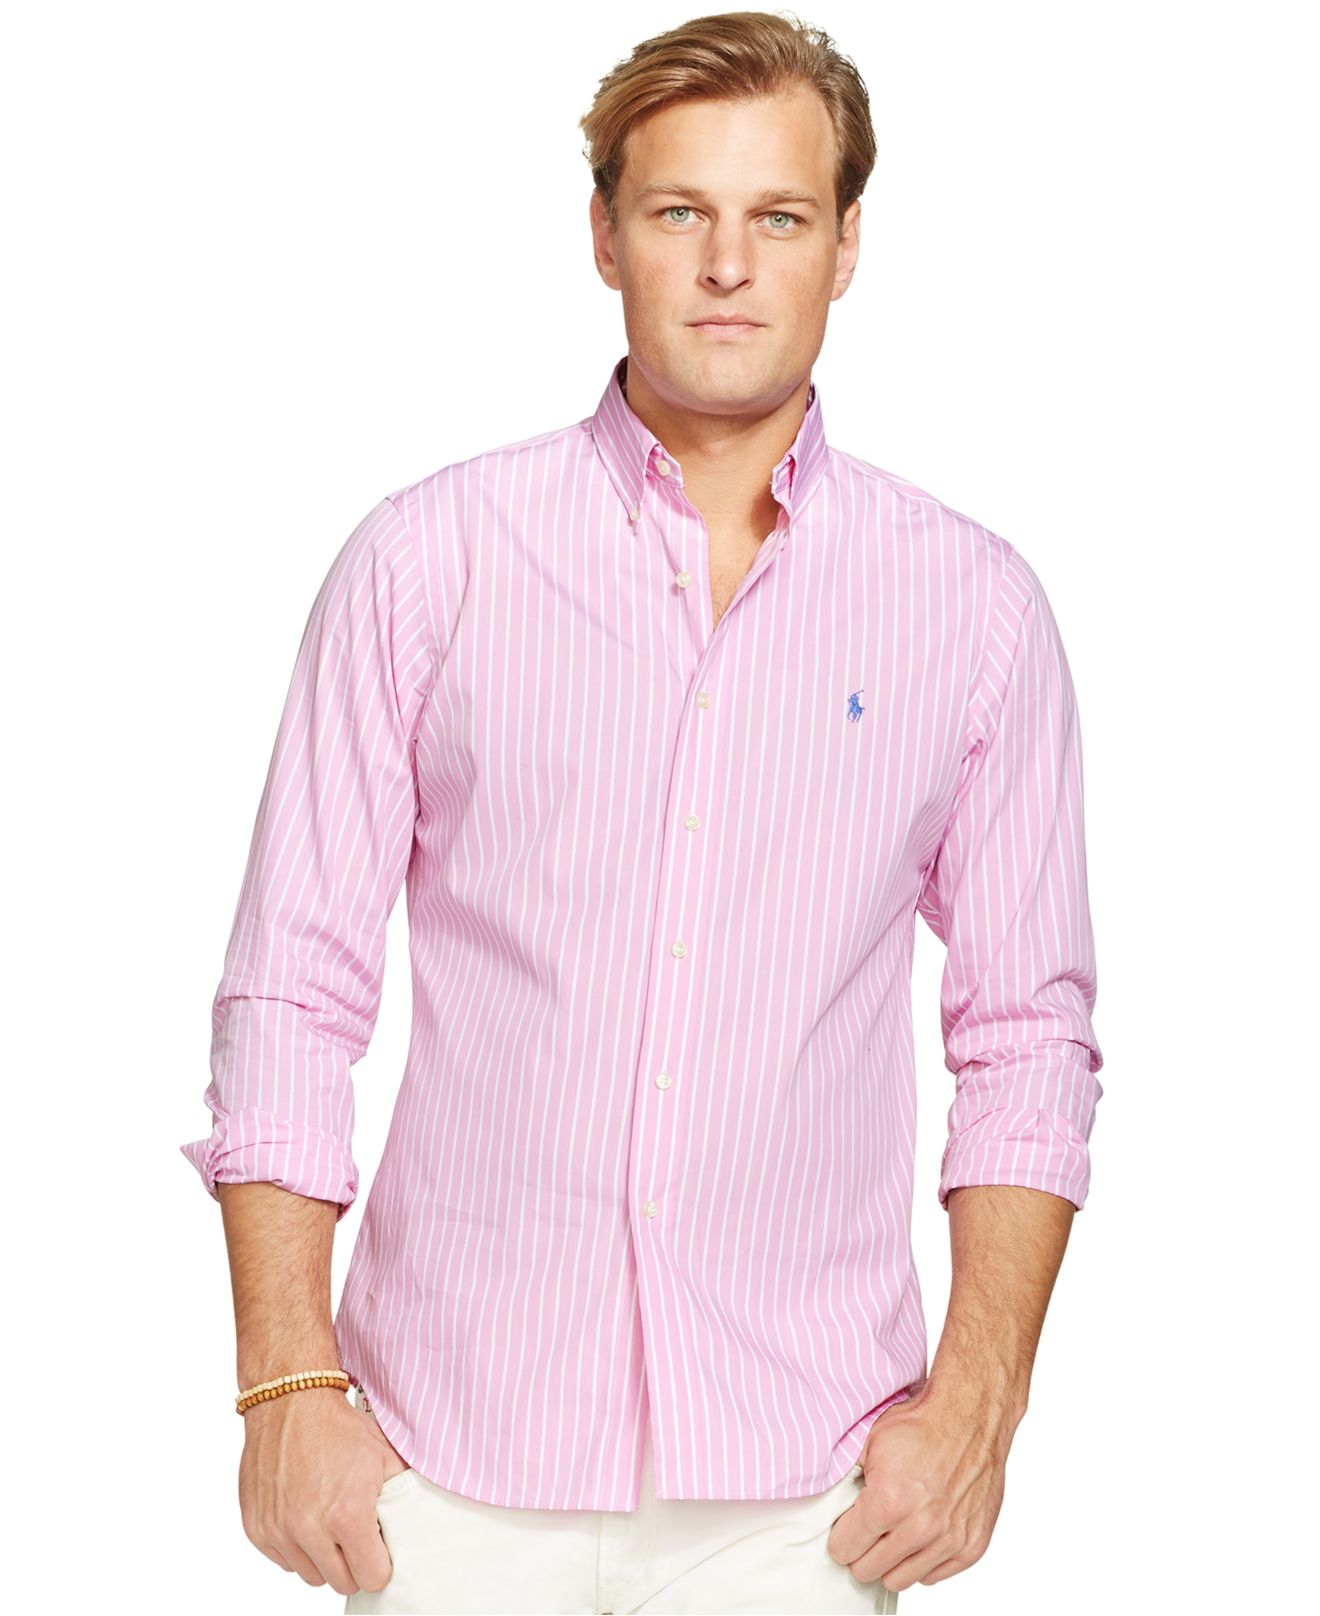 Polo ralph lauren Big And Tall Poplin Striped Long Sleeve Shirt in ...